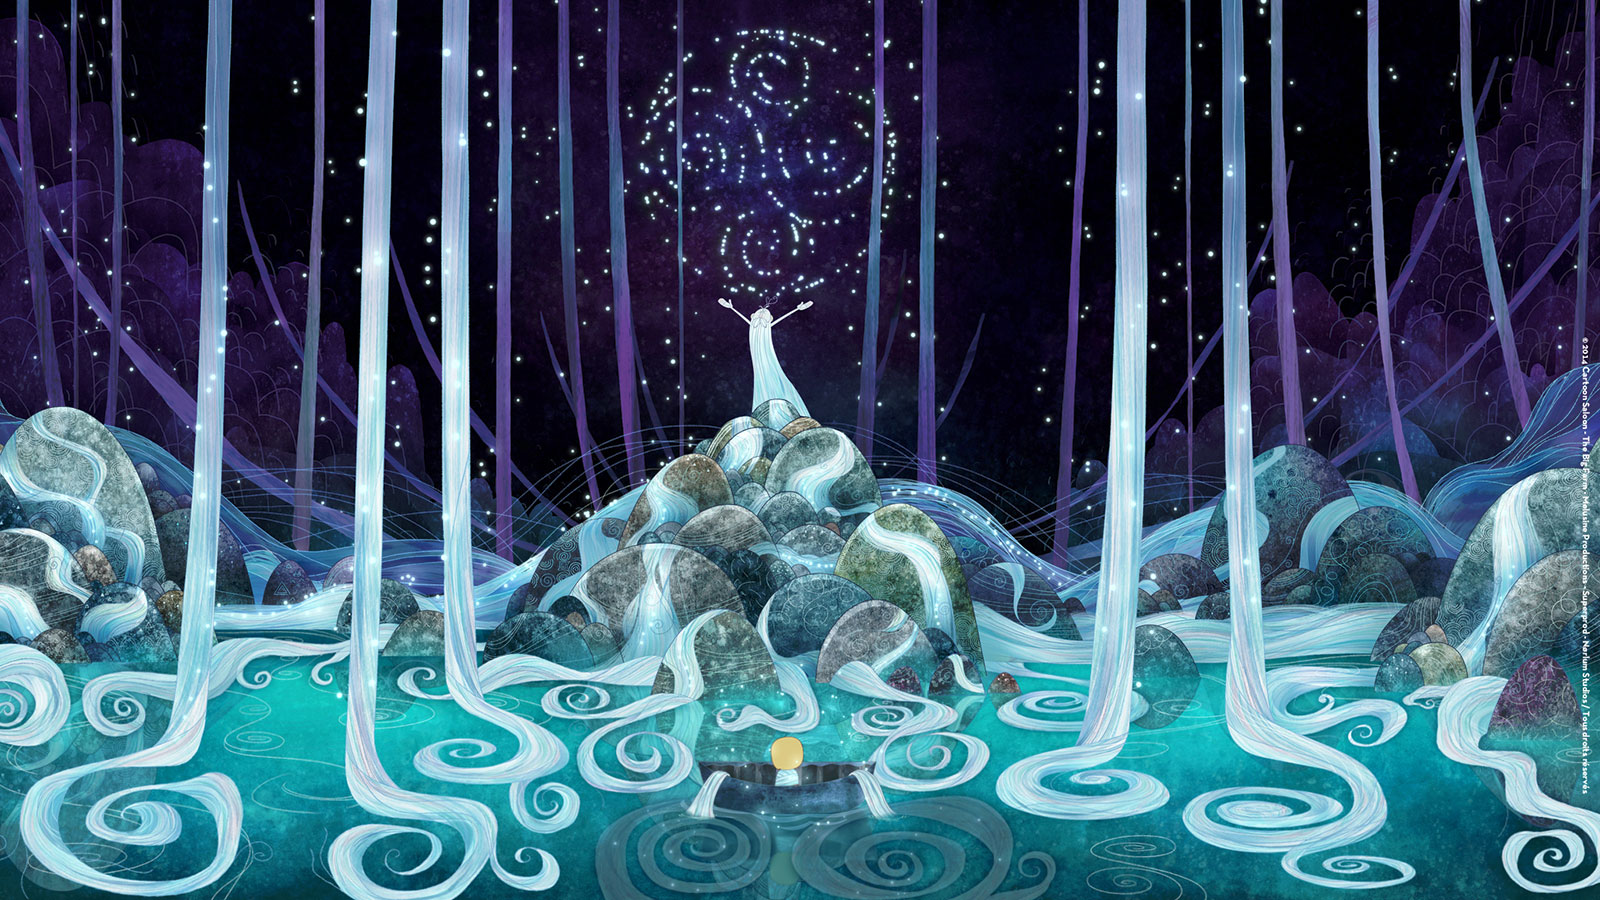 Song of the sea new hd wallpapers all hd wallpapers All hd song